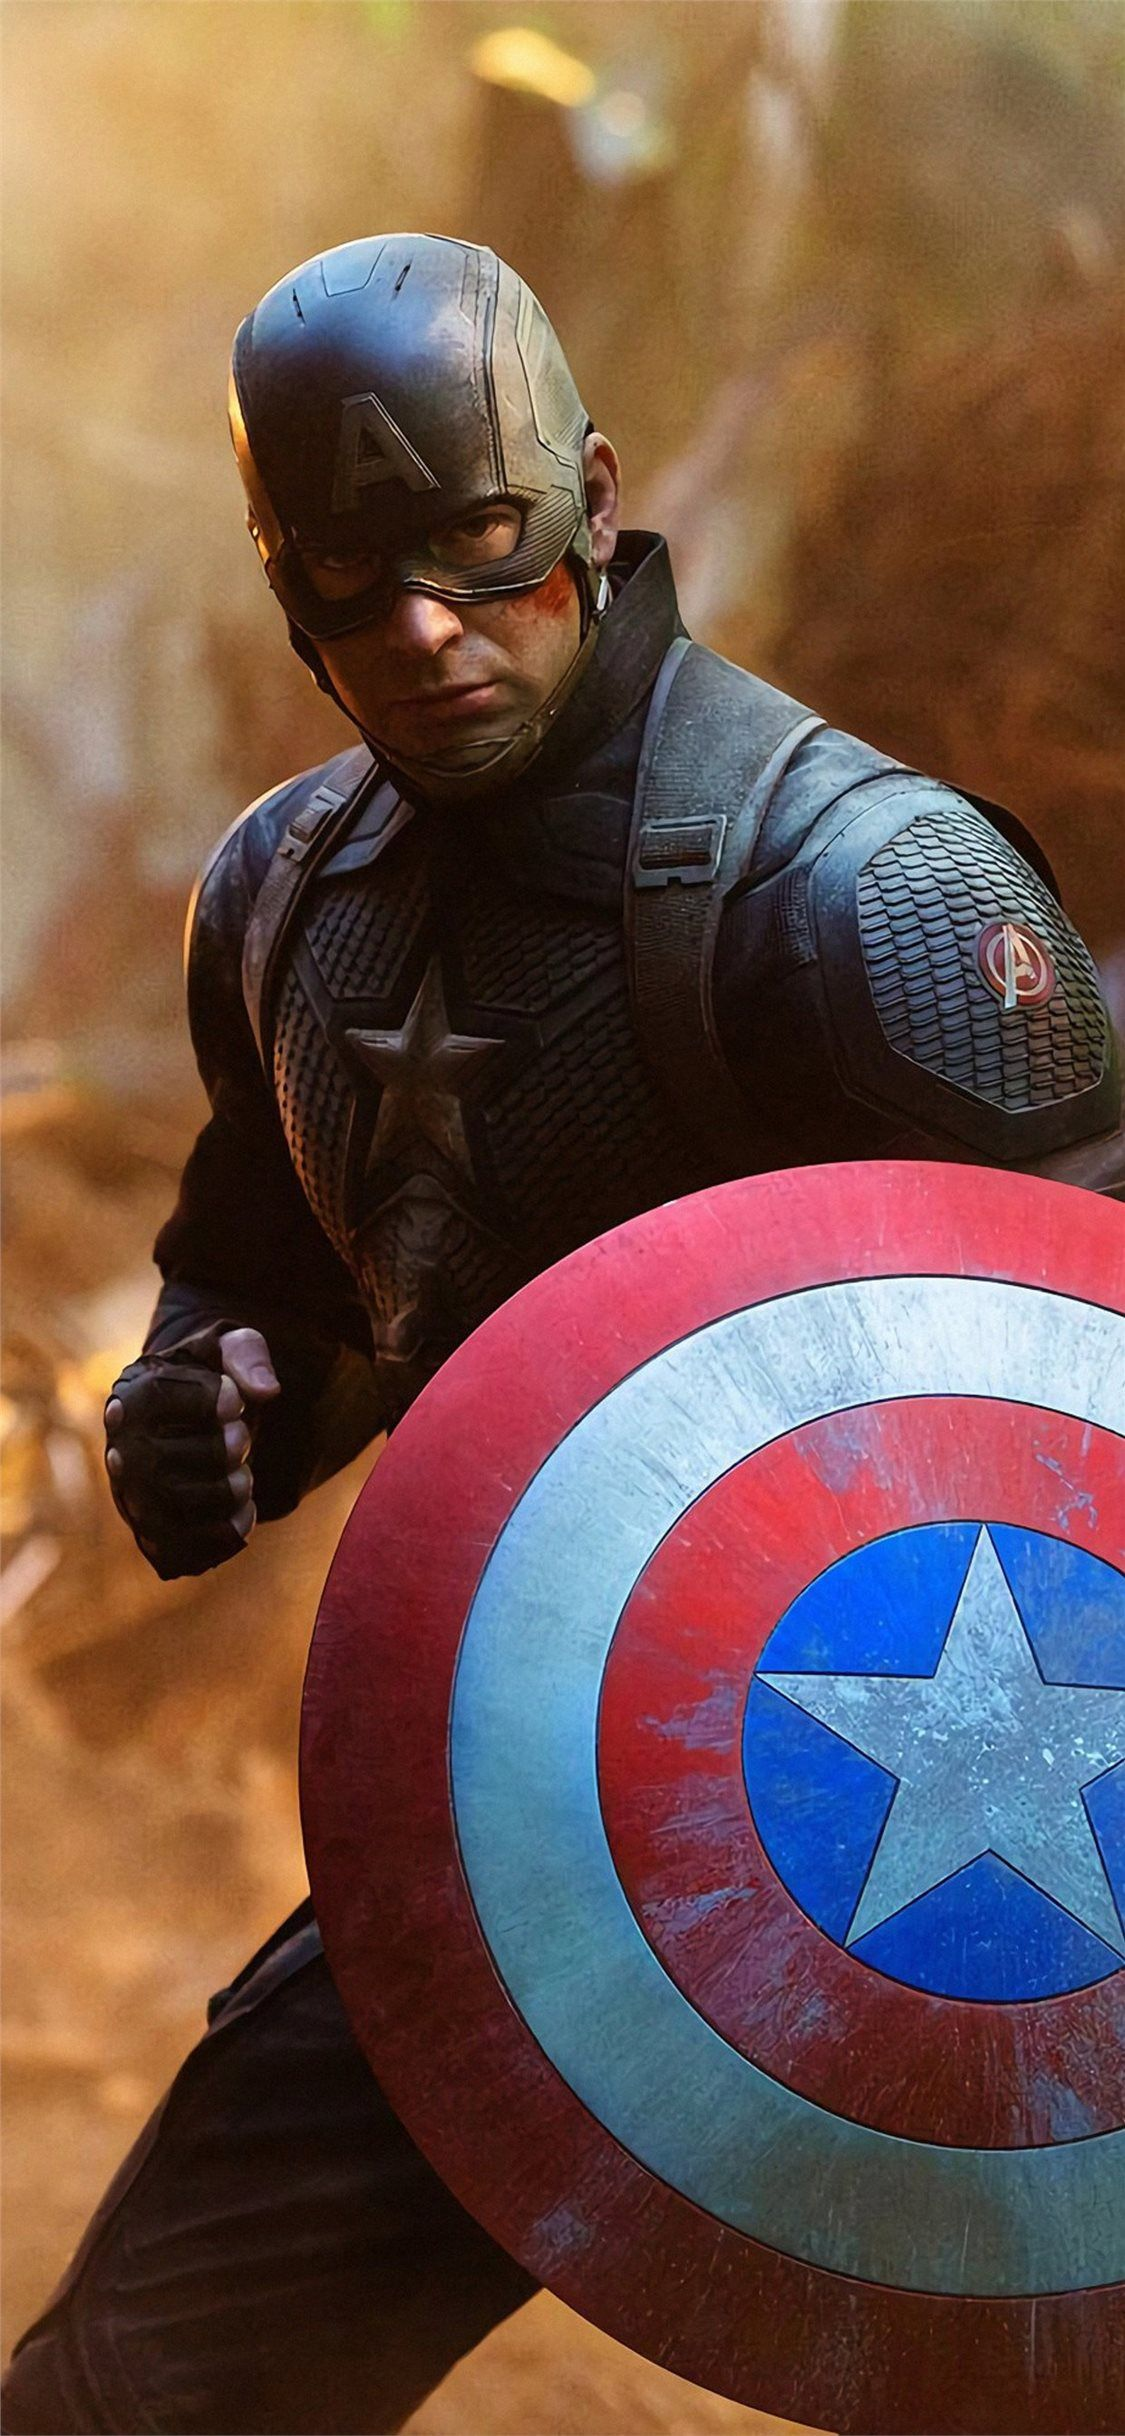 Captain America Iphone 11 Wallpapers Top Free Captain America Iphone 11 Backgrounds Wallpaperaccess